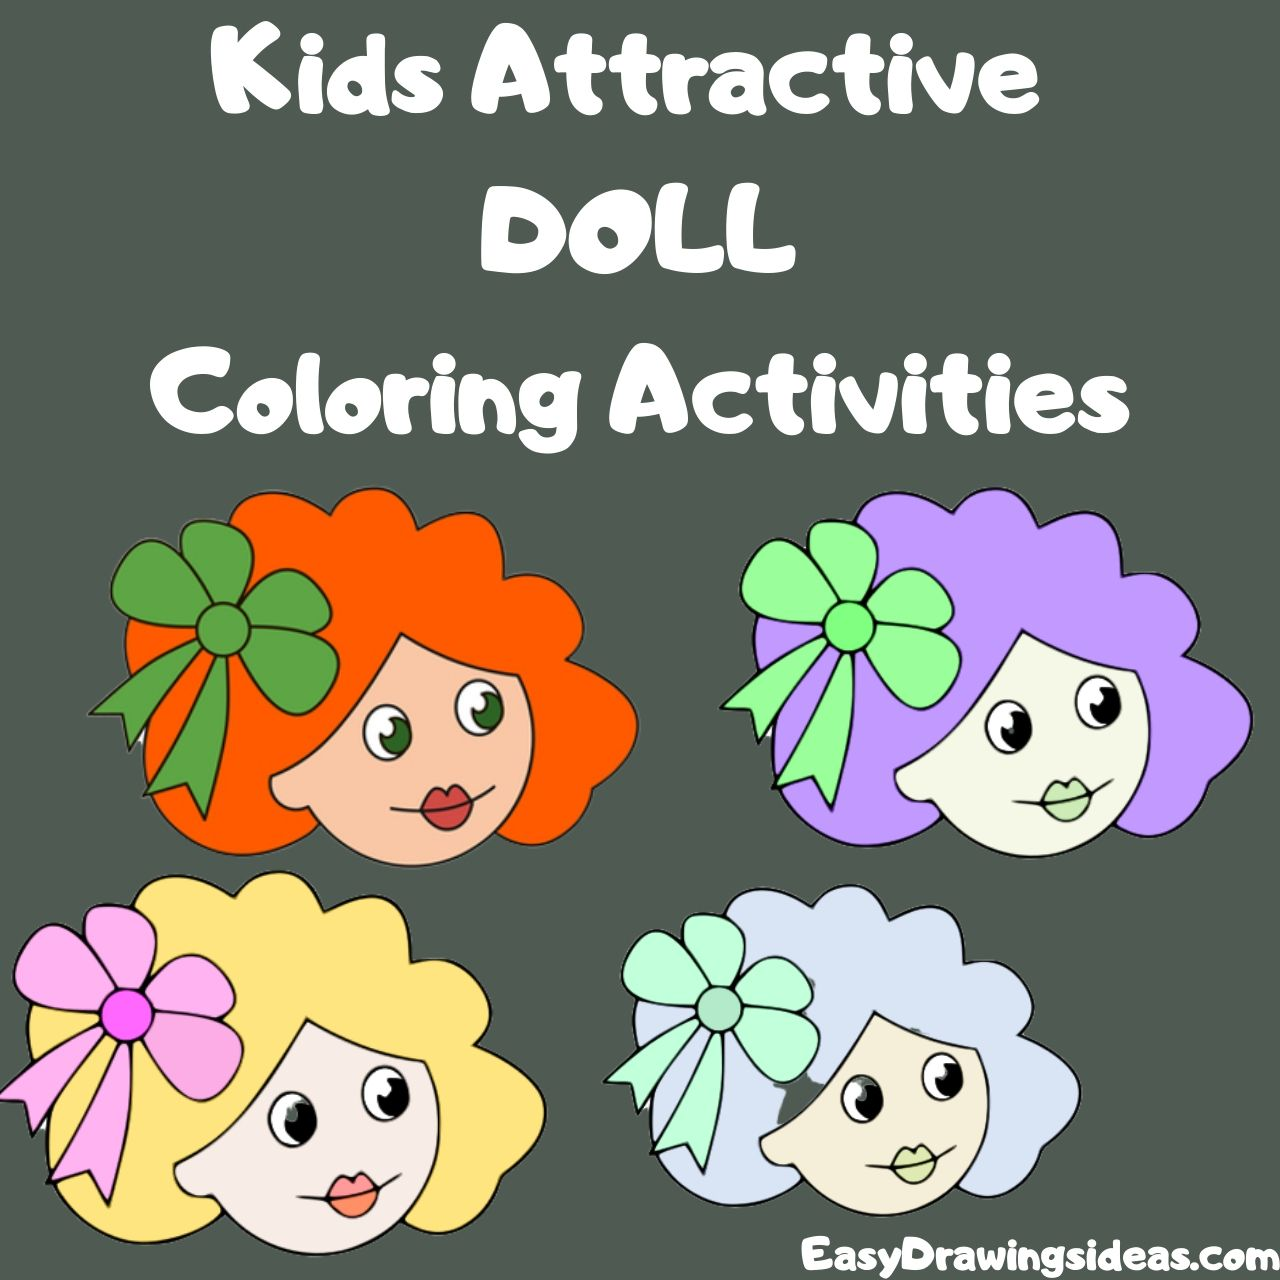 Kids Attractive doll Coloring Activities FOR KIDS STEP BY STEP